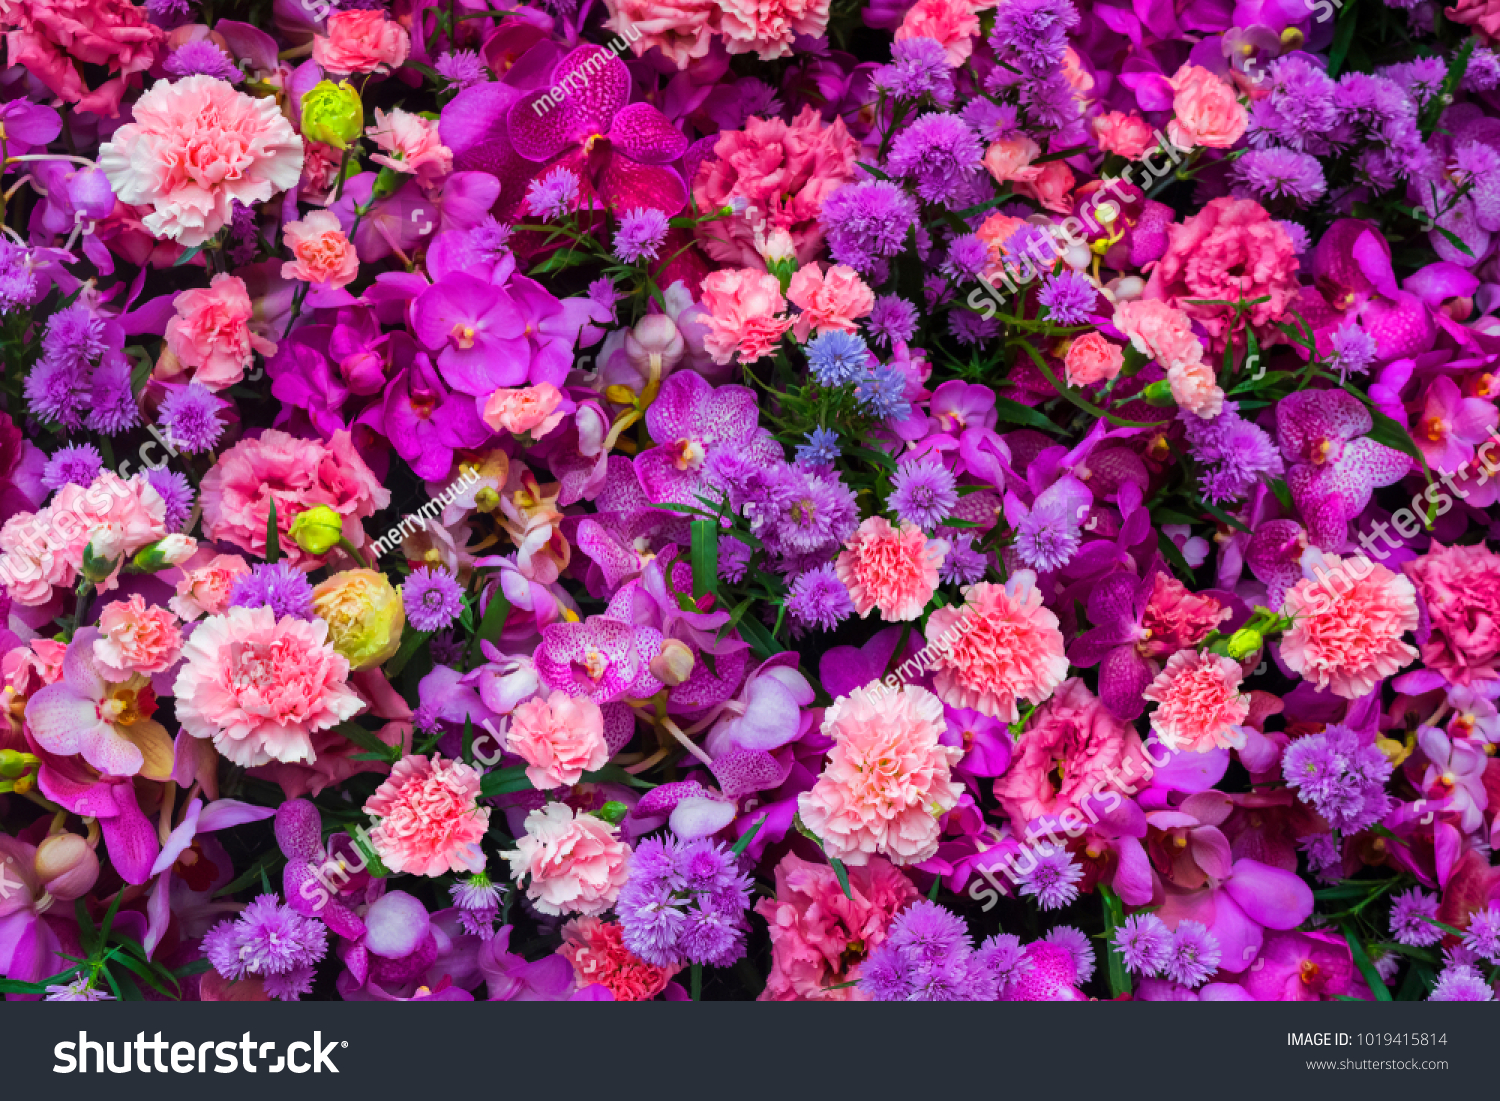 Colorful flower bouquet background made pink stock photo edit now colorful flower bouquet background made of pink and purple carnation and orchid flowers wall for background izmirmasajfo